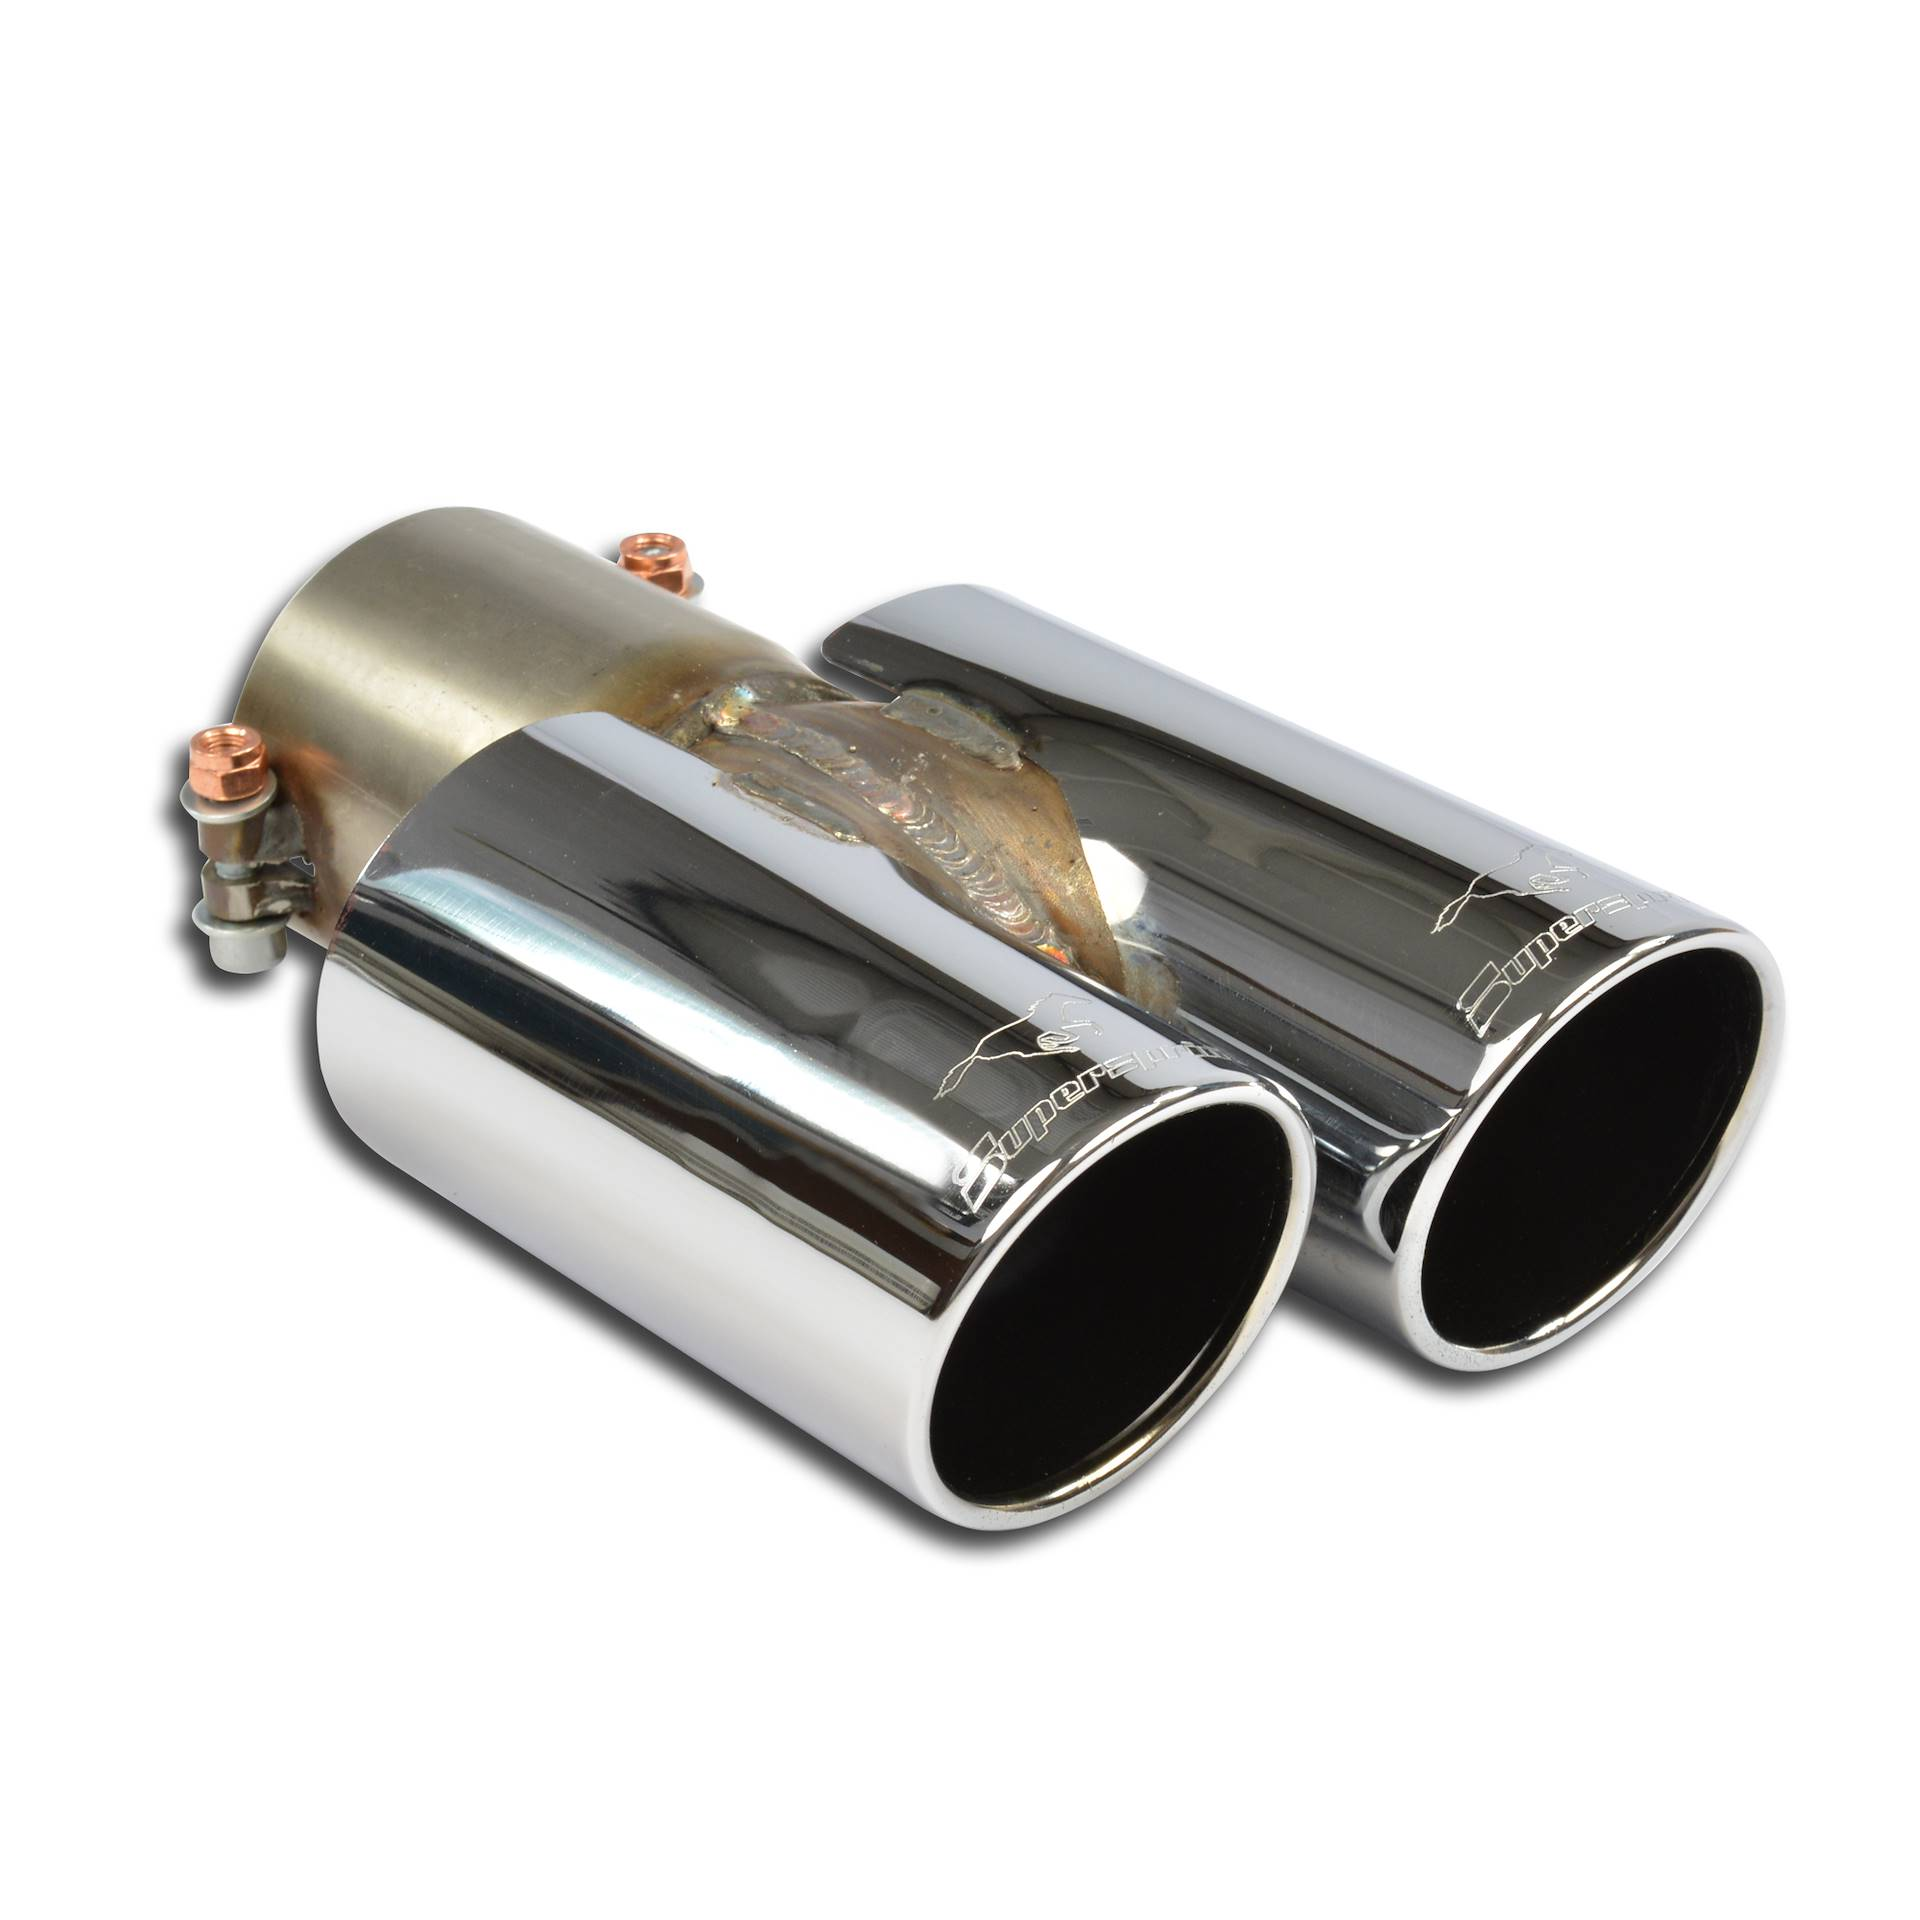 Volkswagen - VW SCIROCCO 2.0 TSI (200Hp/211 Hp) 2008 -> 2014 (Ø76mm) Endpipe kit OO80, performance exhaust systems